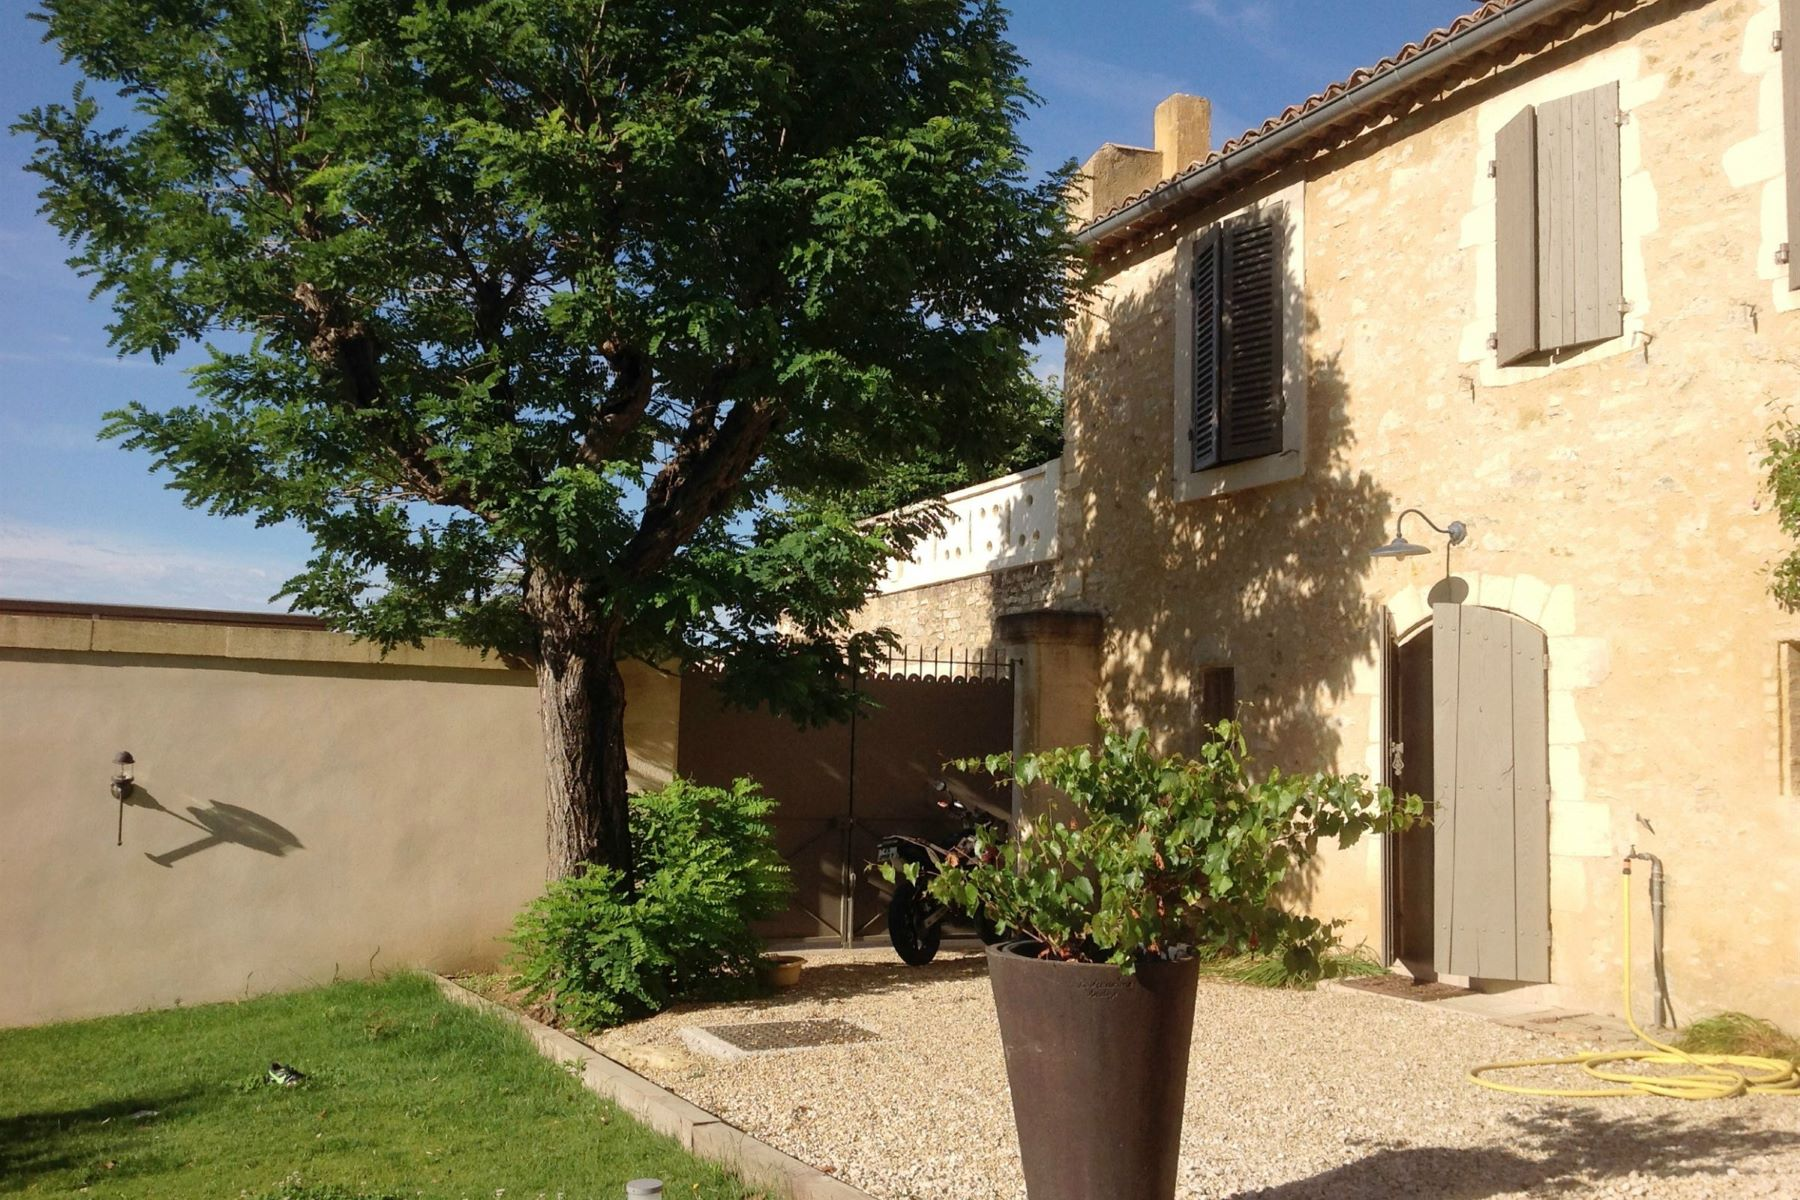 واحد منزل الأسرة للـ Sale في UZES - WONDERFUL PROPERTY Uzes, Languedoc-Roussillon, 30700 France